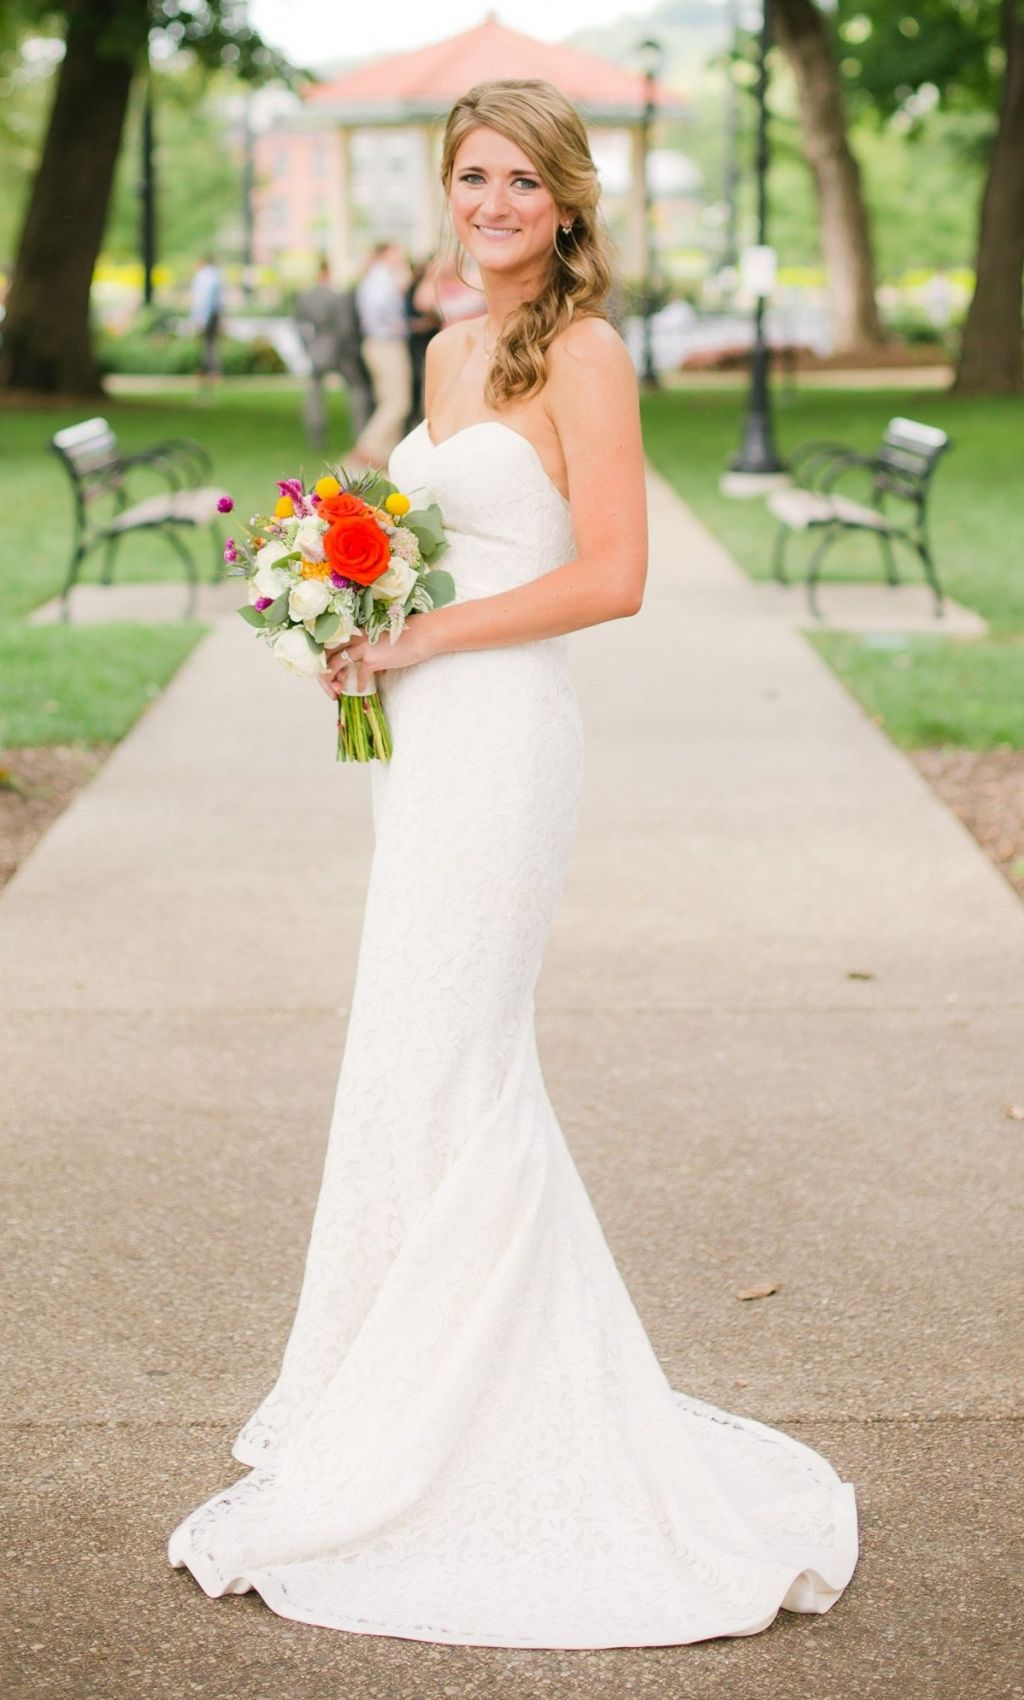 Pre owned bridal gowns vosoi amy kuschel wedding dresses for sale preowned wedding dresses ombrellifo Image collections